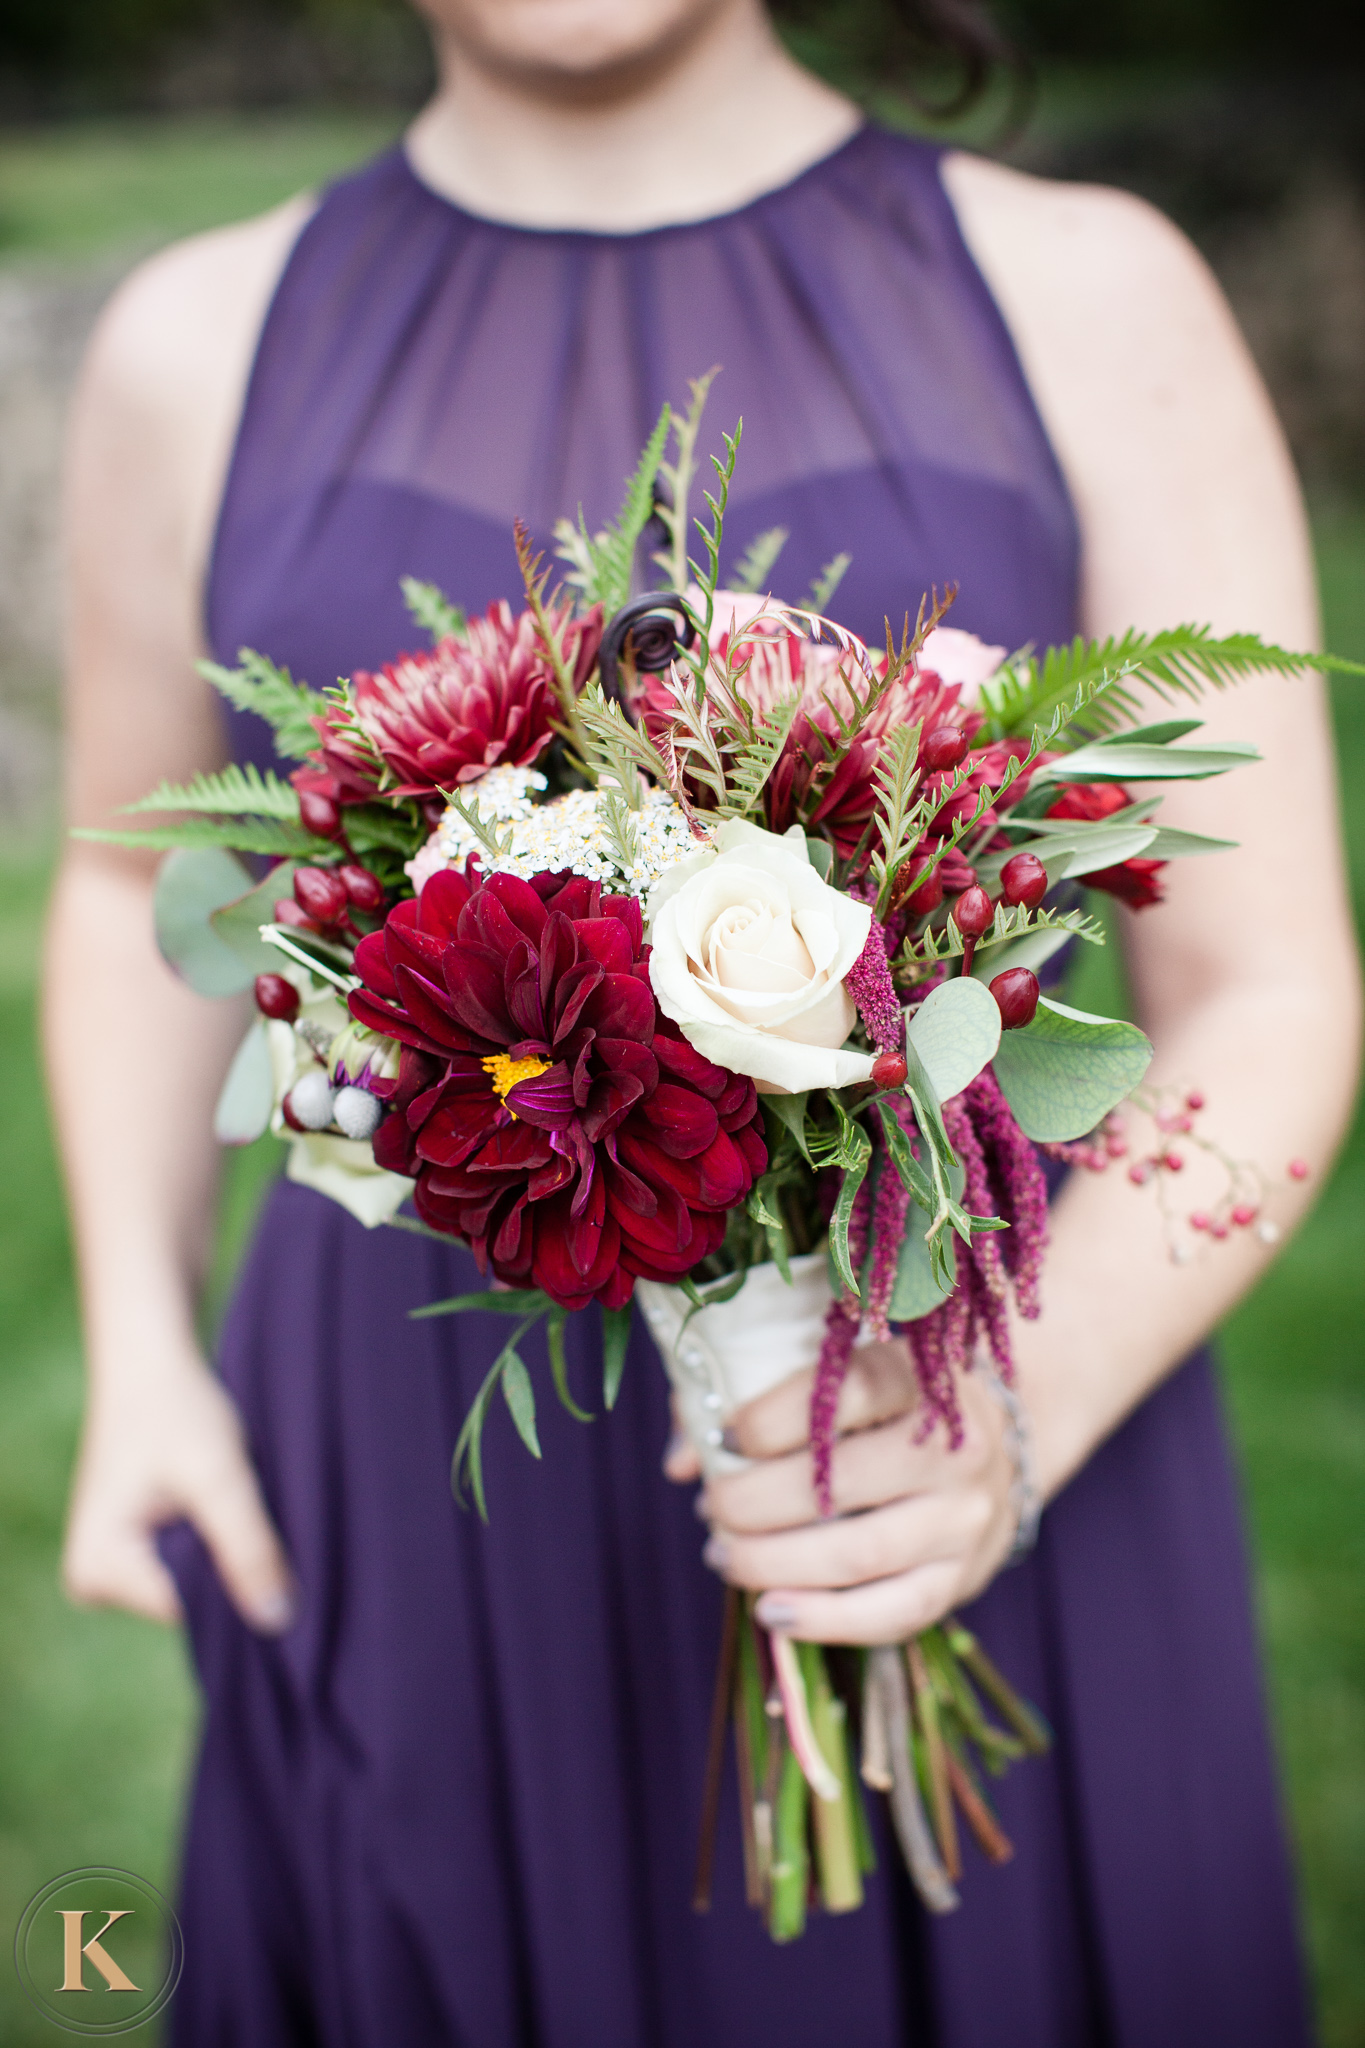 red and white bouquet, bridesmaid bouquet, wedding bouquet, lake of the ozarks, osage beach, lake ozark, camdenton, hand tied bouquet, janine's flowers, wedding flowers, lake wedding, fall wedding